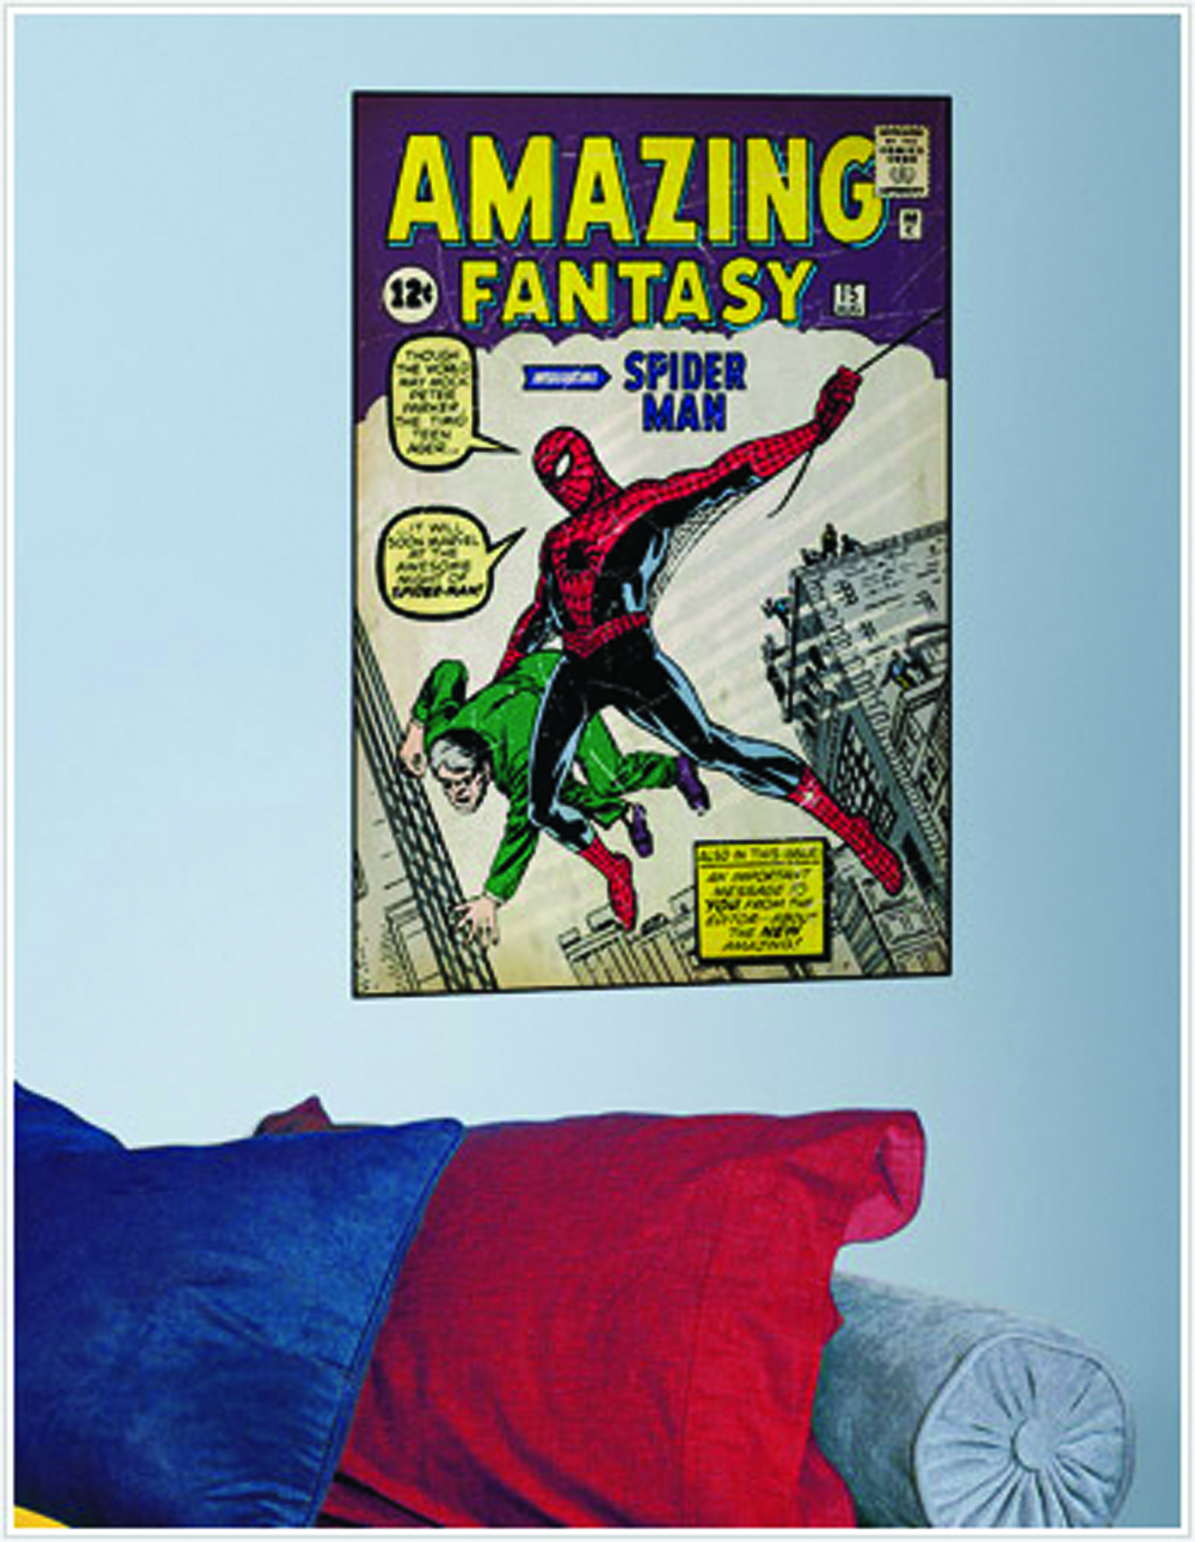 SPIDER-MAN COMIC COVER GIANT WALL DECAL